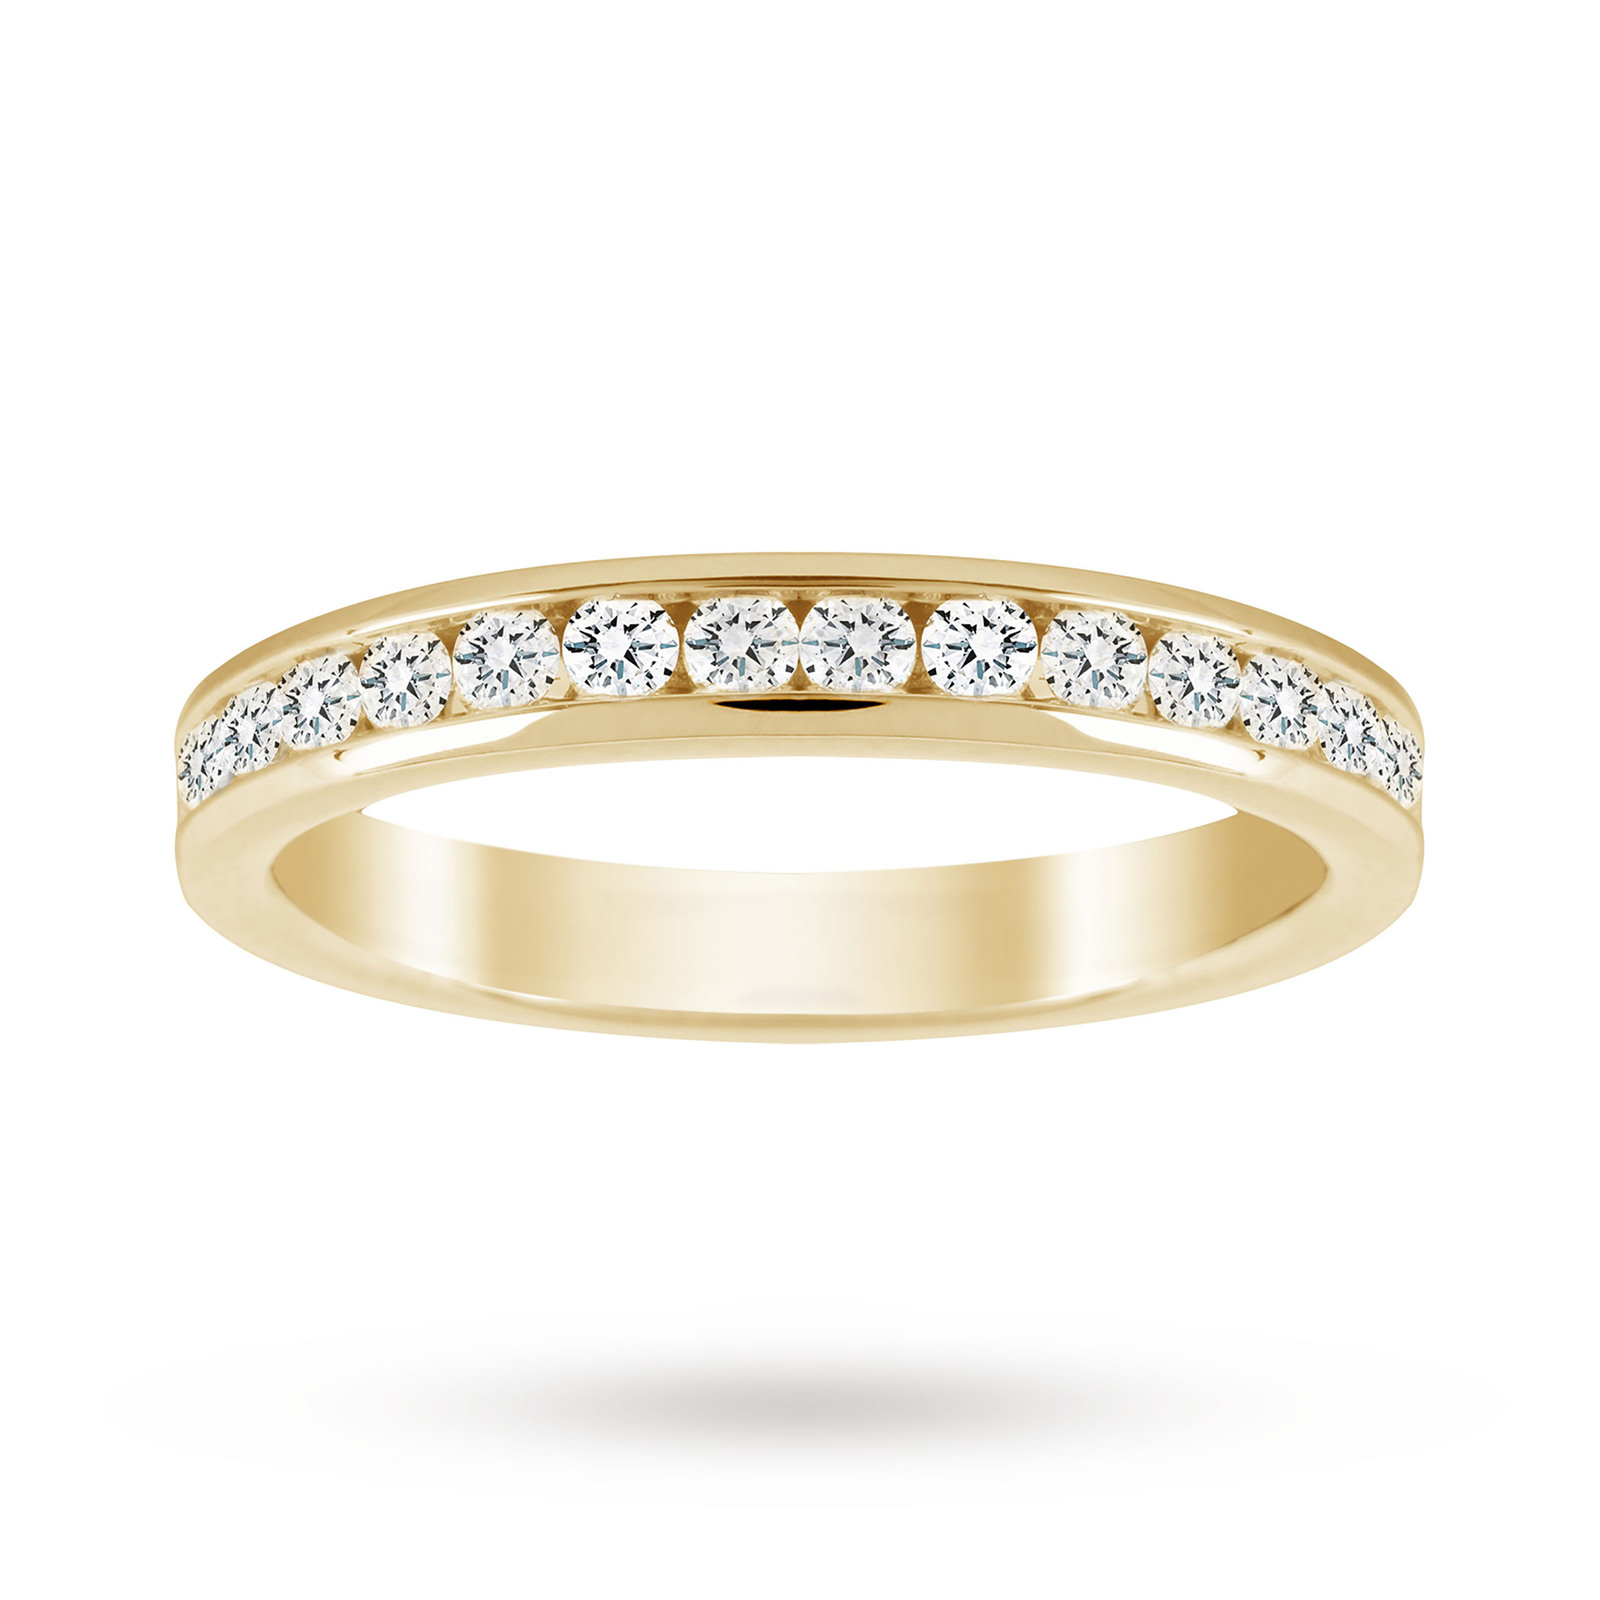 18ct Yellow Gold 0.50cttw Diamond Half Eternity Ring - Ring Size K